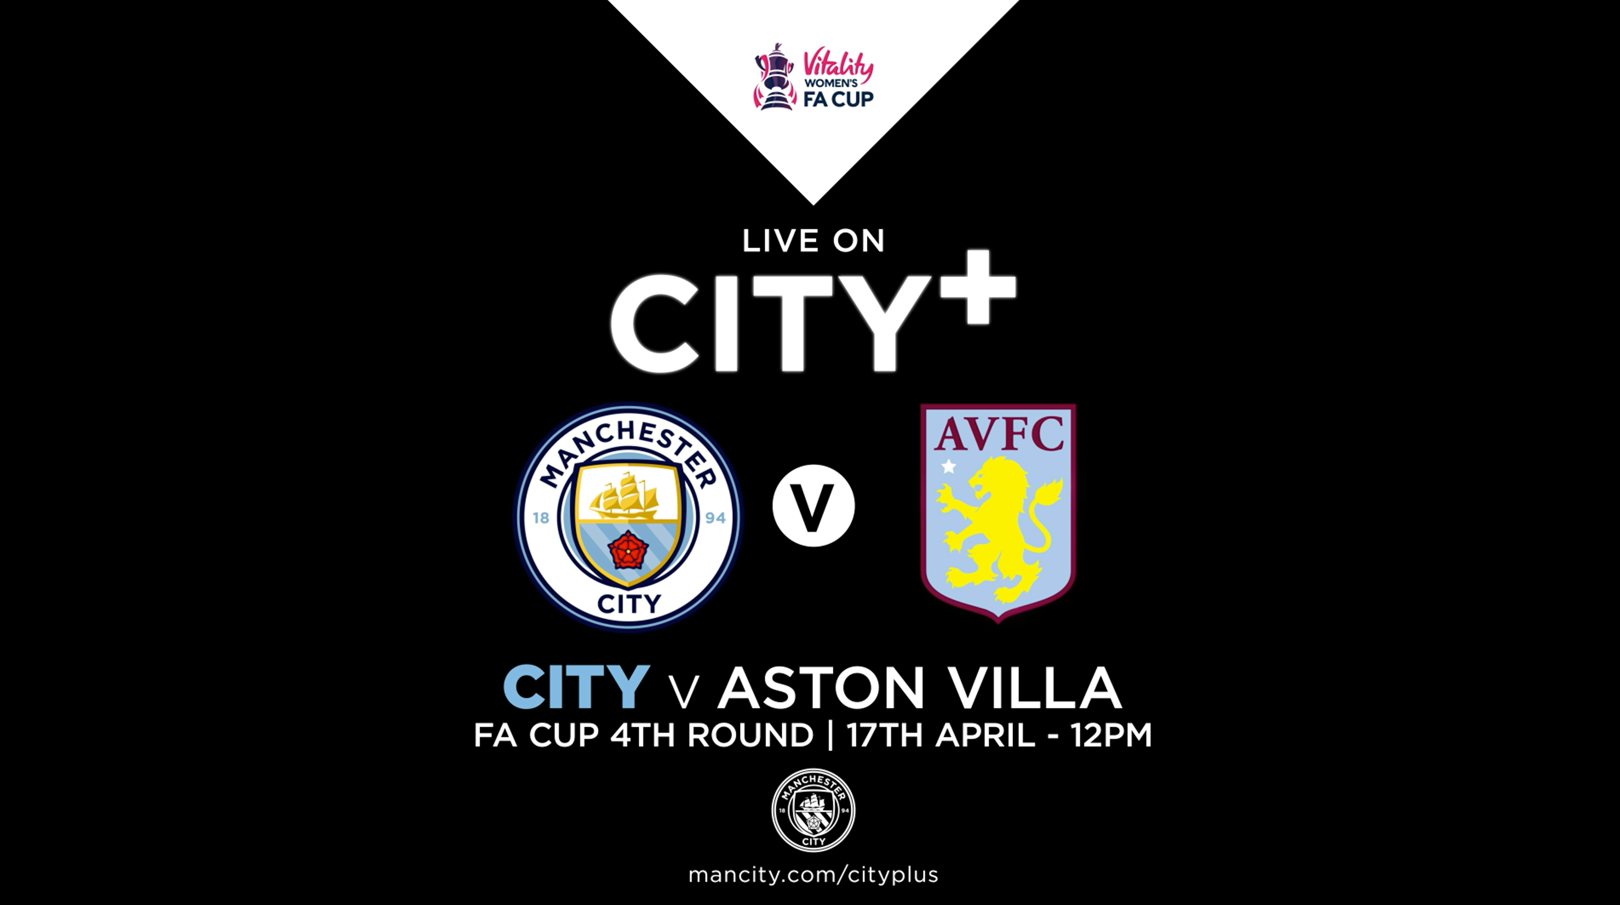 Watch City v Aston Villa in the FA Women's Cup live on CITY+